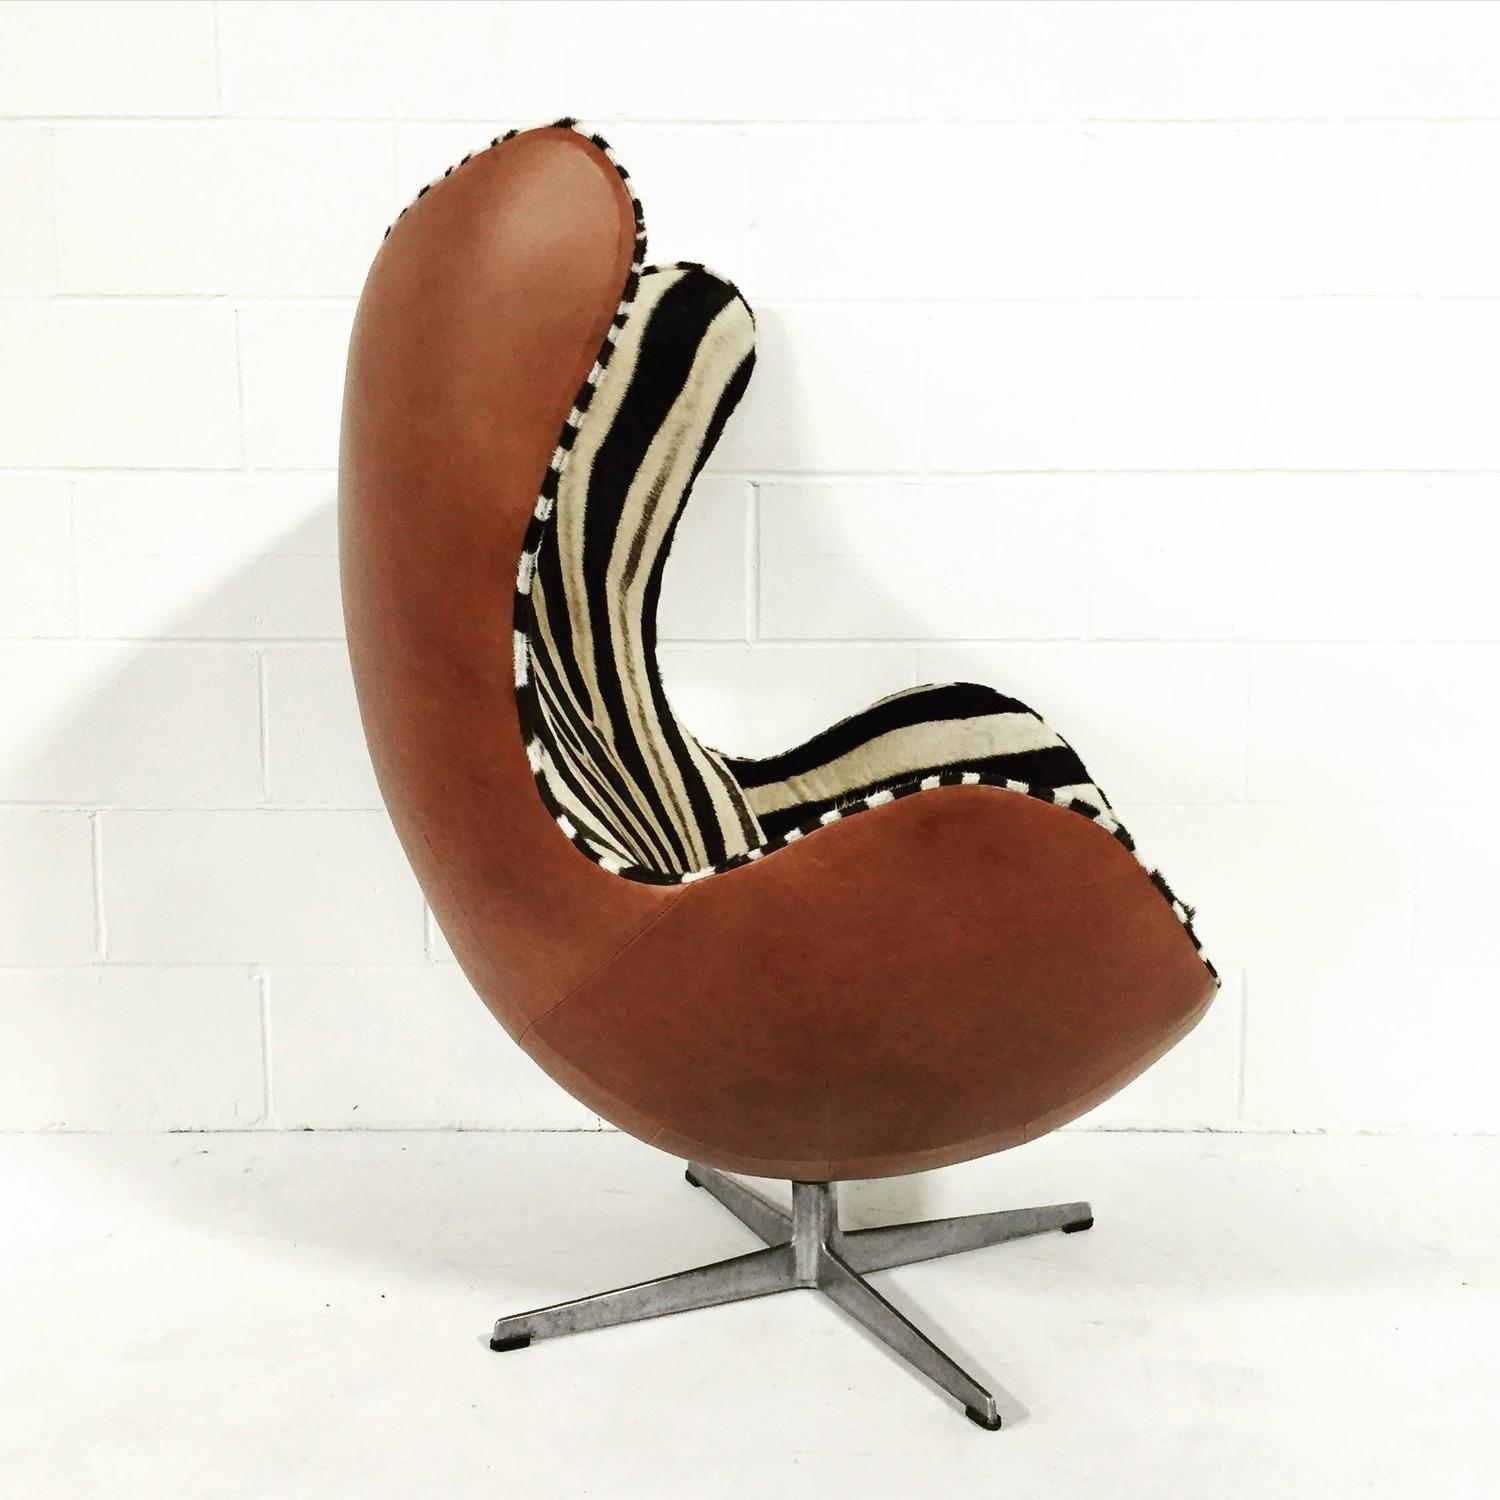 Arne jacobsen egg chair in zebra hide and leather for sale at 1stdibs - Second hand egg chair ...